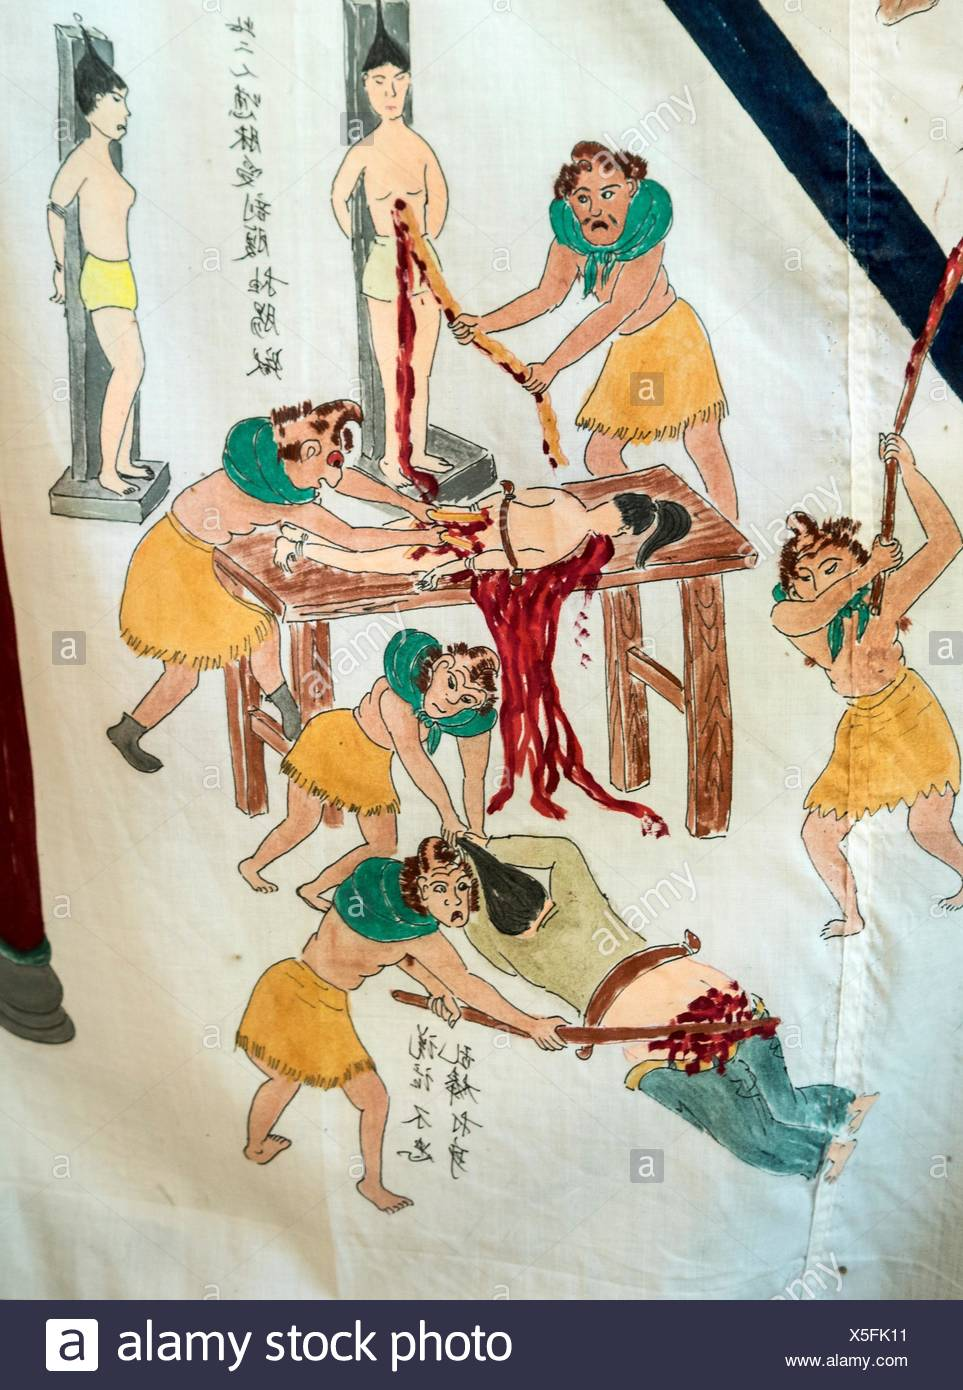 A depiction of cruelty at Duo Gong Temple in Jiu Cheng. - Stock Image